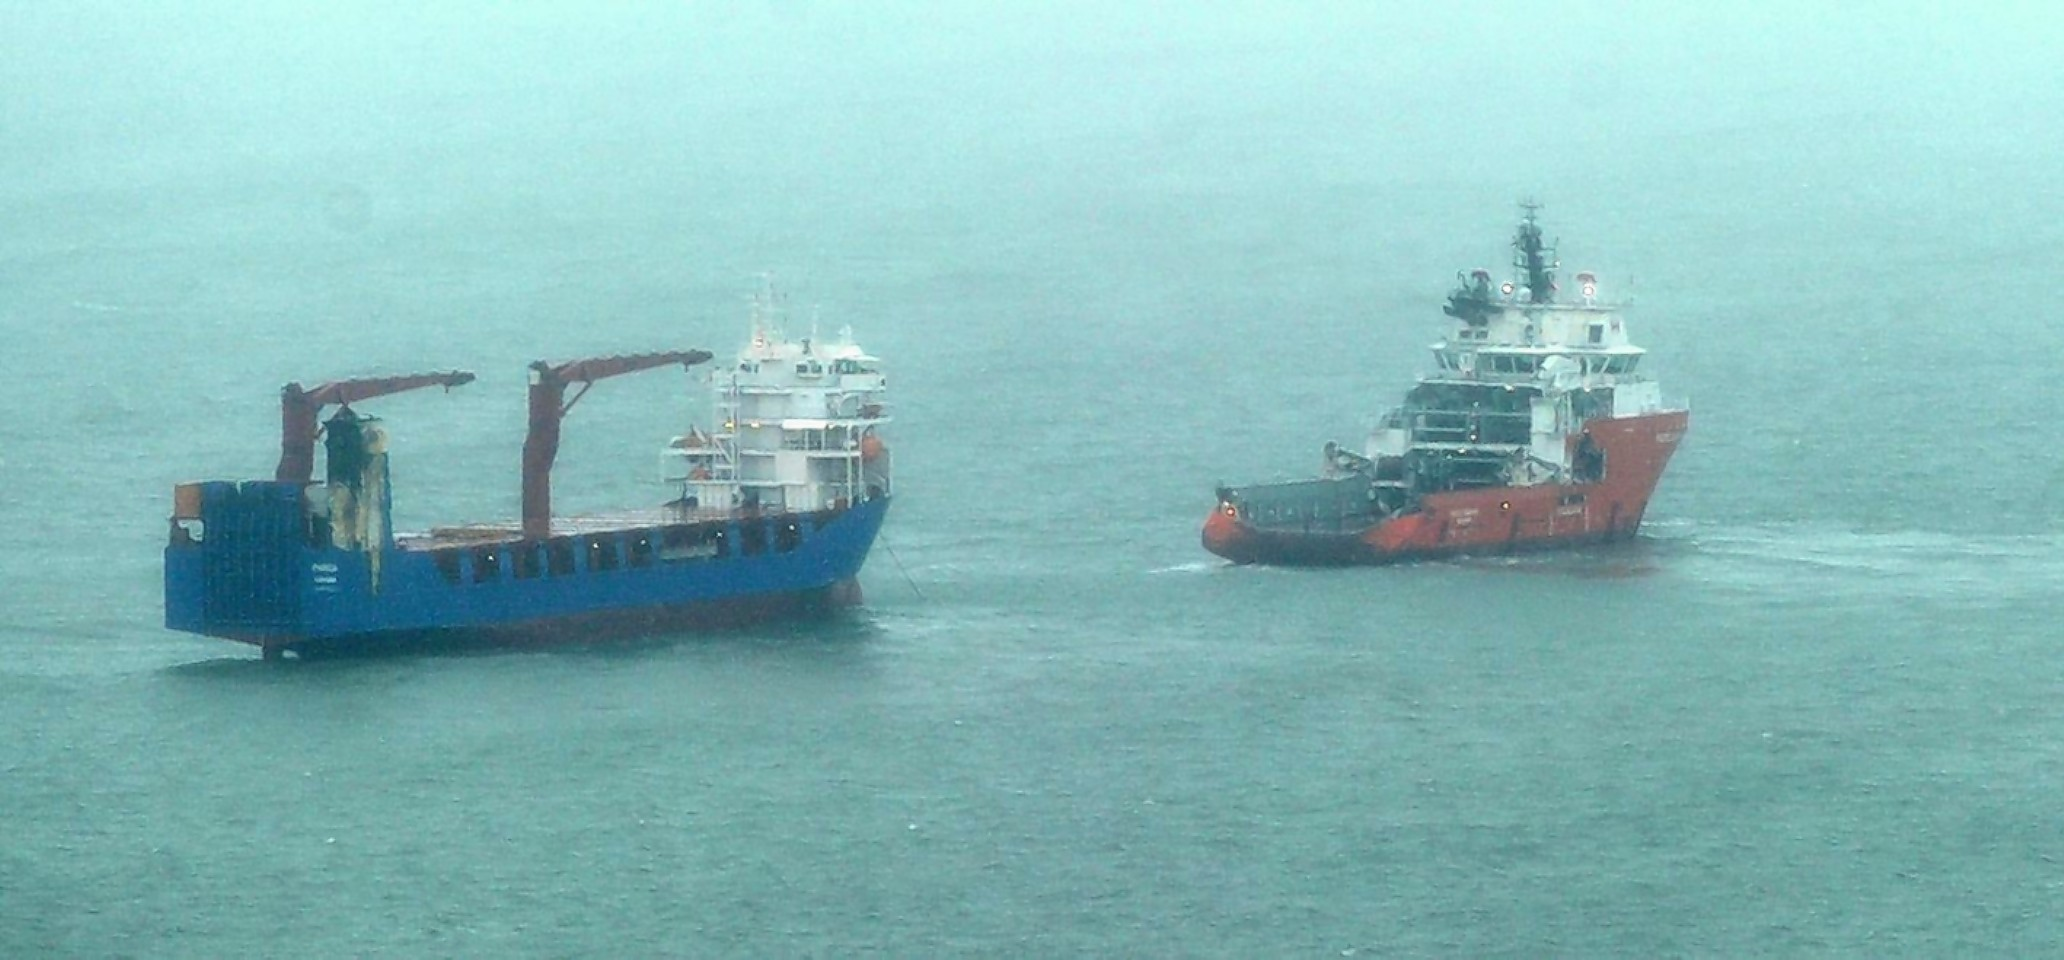 The stricken vessel  is attended by the rescue tug at the entrance to the Cromarty Firth in Easter Ross.